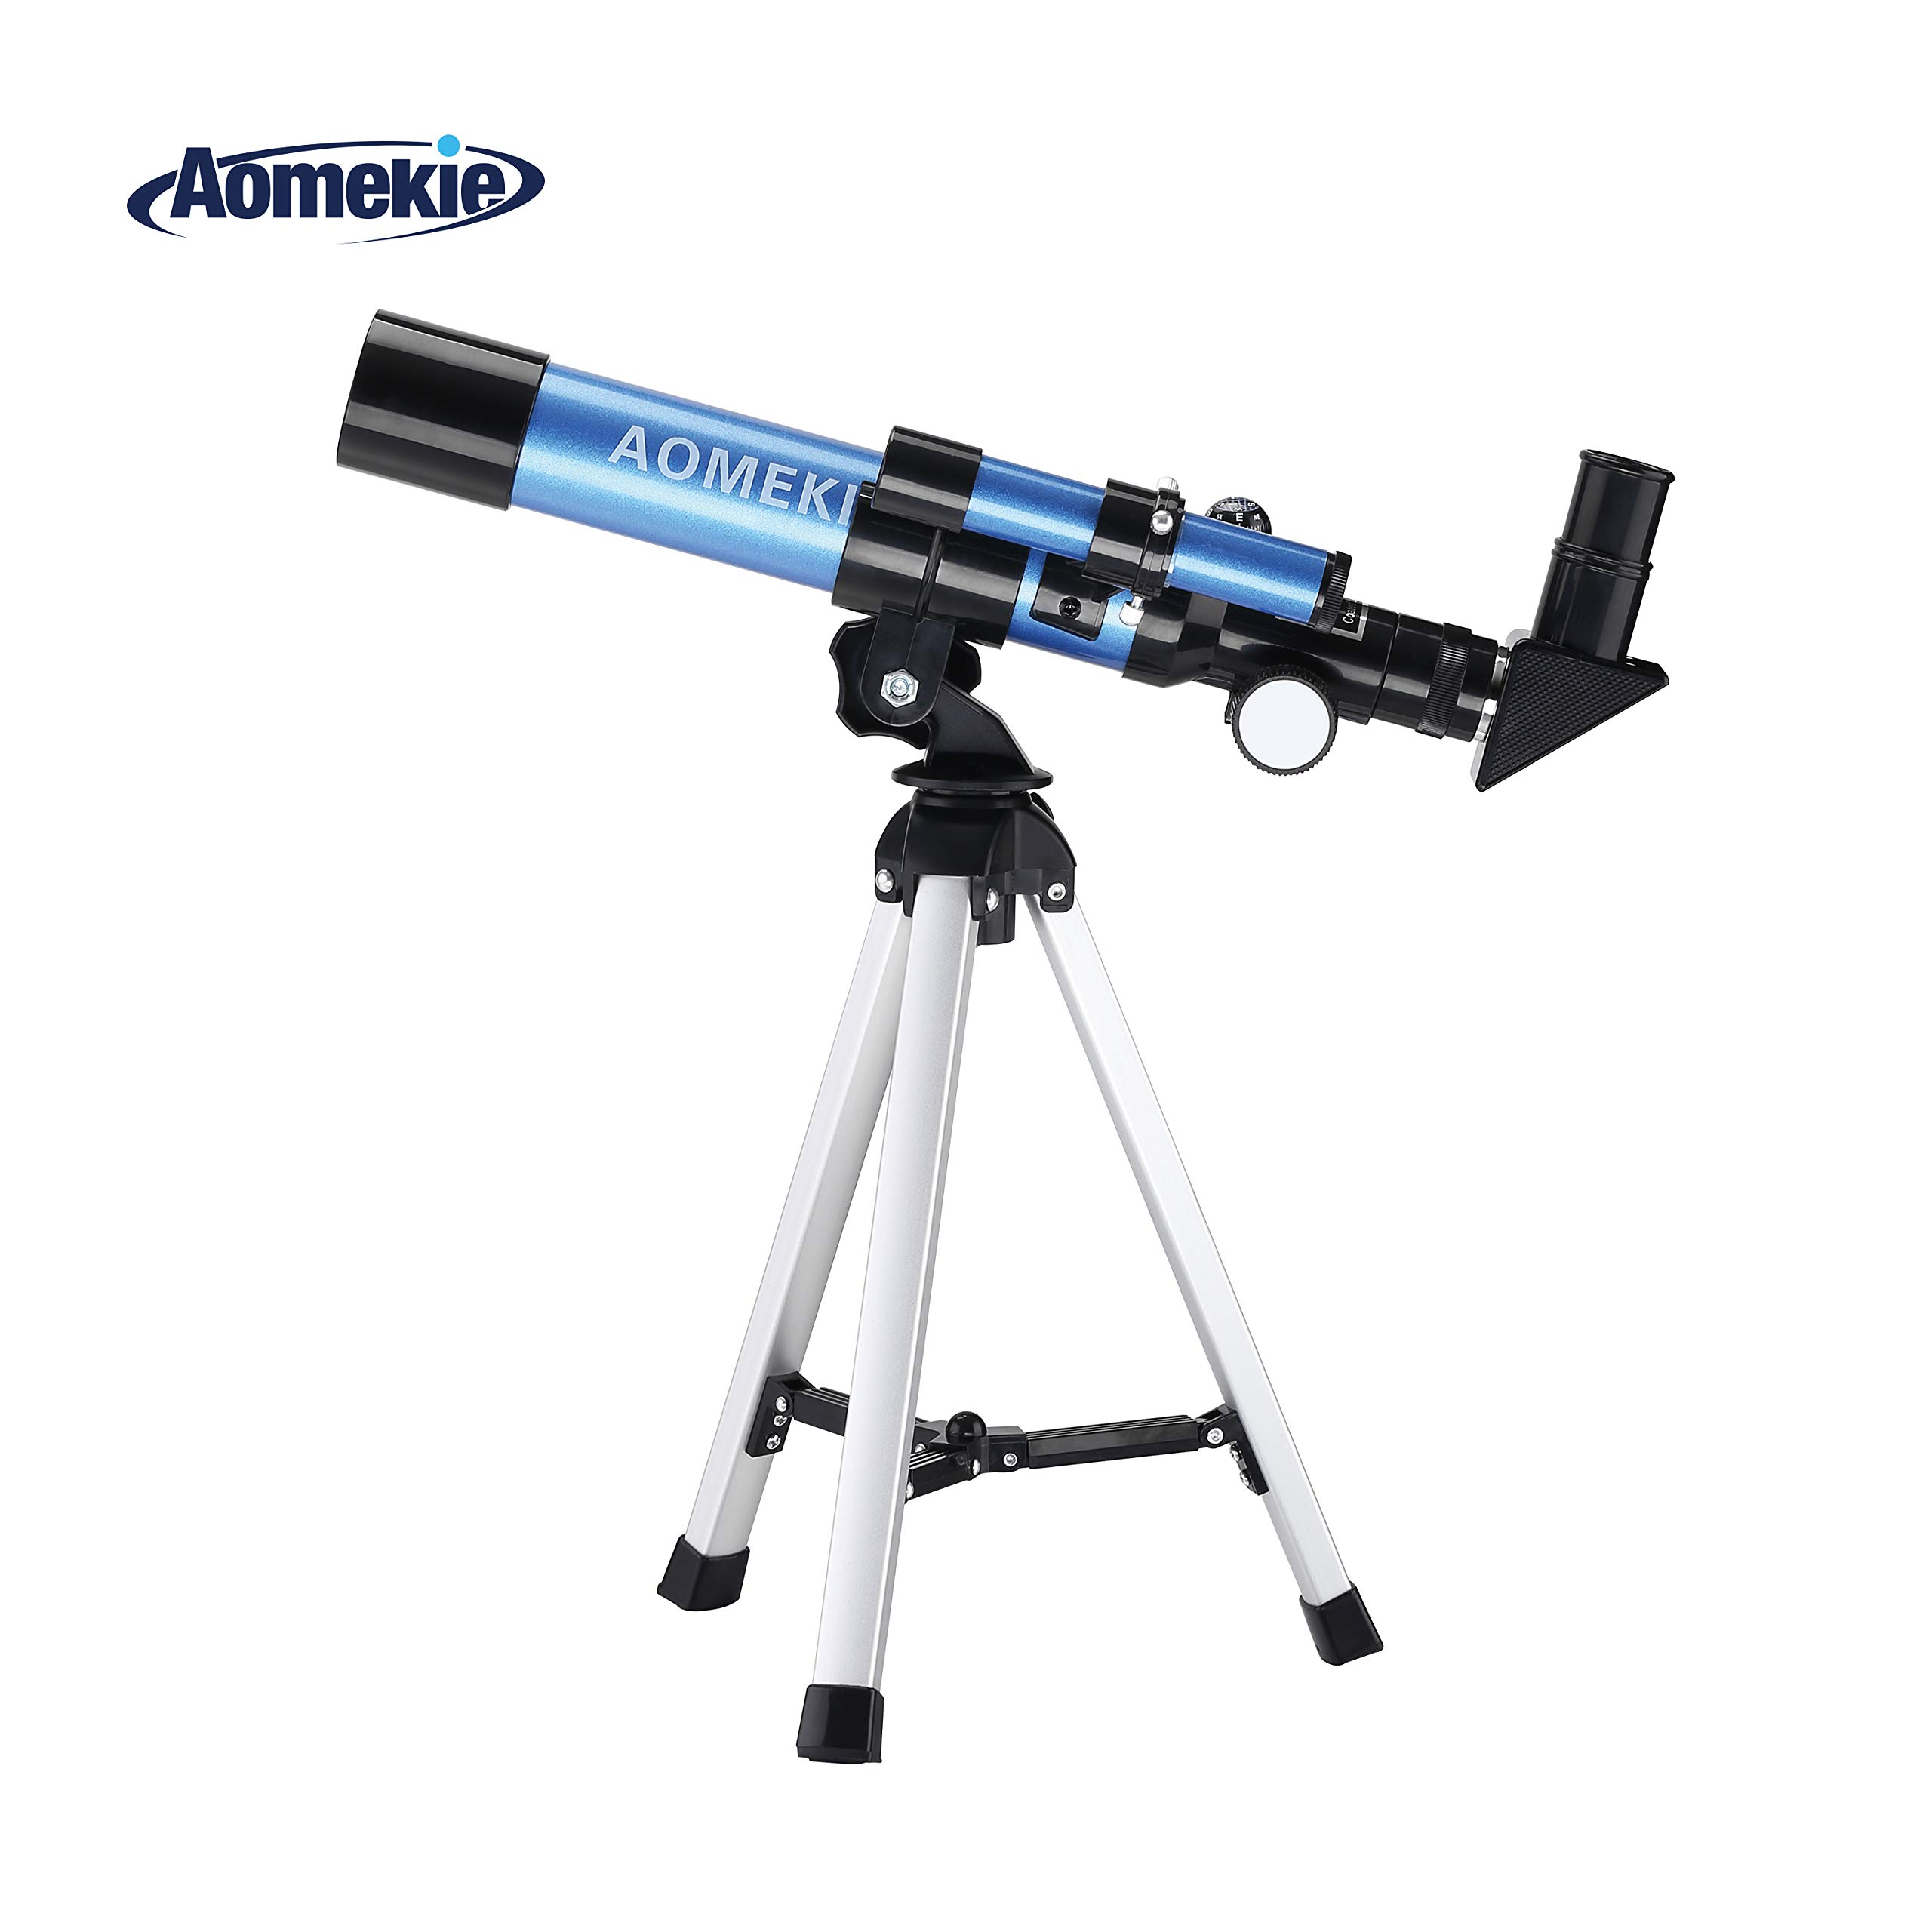 Aomekie Telescope for Kids Astronomy Beginners Refractor Telescopes with Tripod Finderscope and Compass